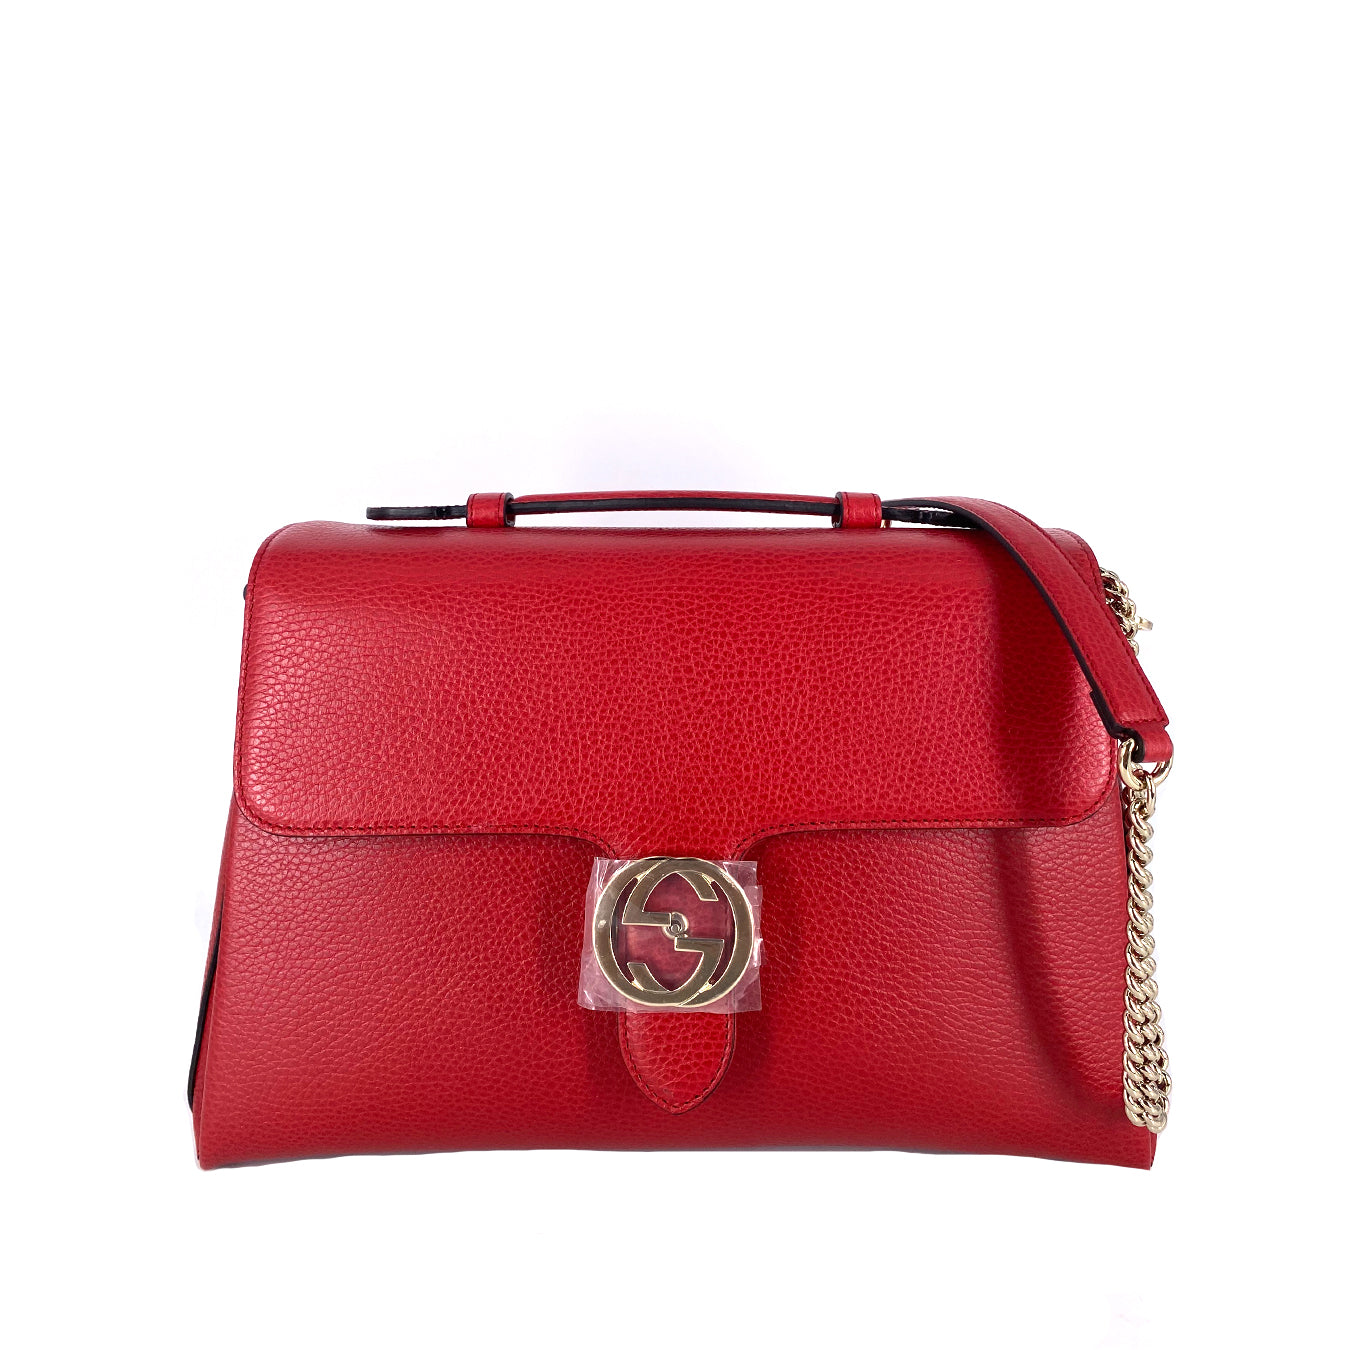 Gucci GG Interlocking Leather Chain Top Handle Bag Large in Red